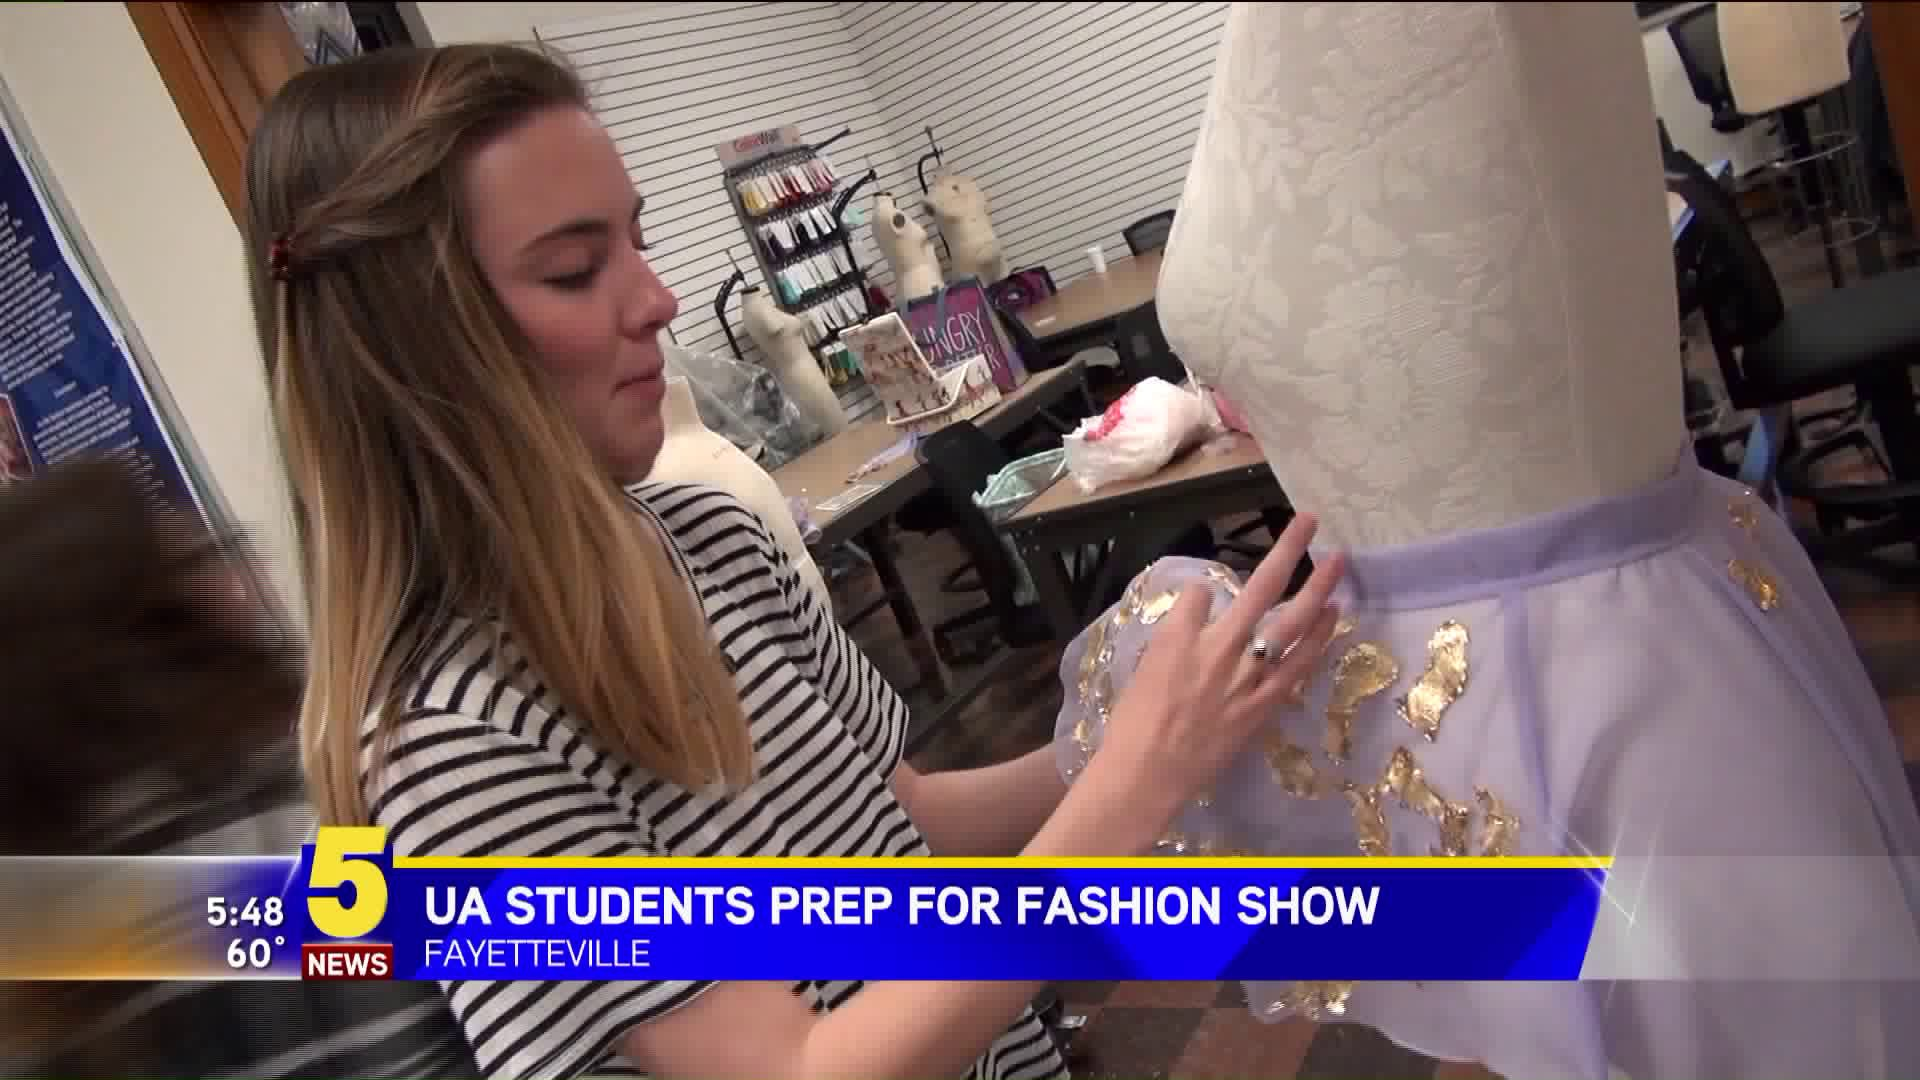 University of Arkansas students prepare for first ever, public fashion show on Wednesday.